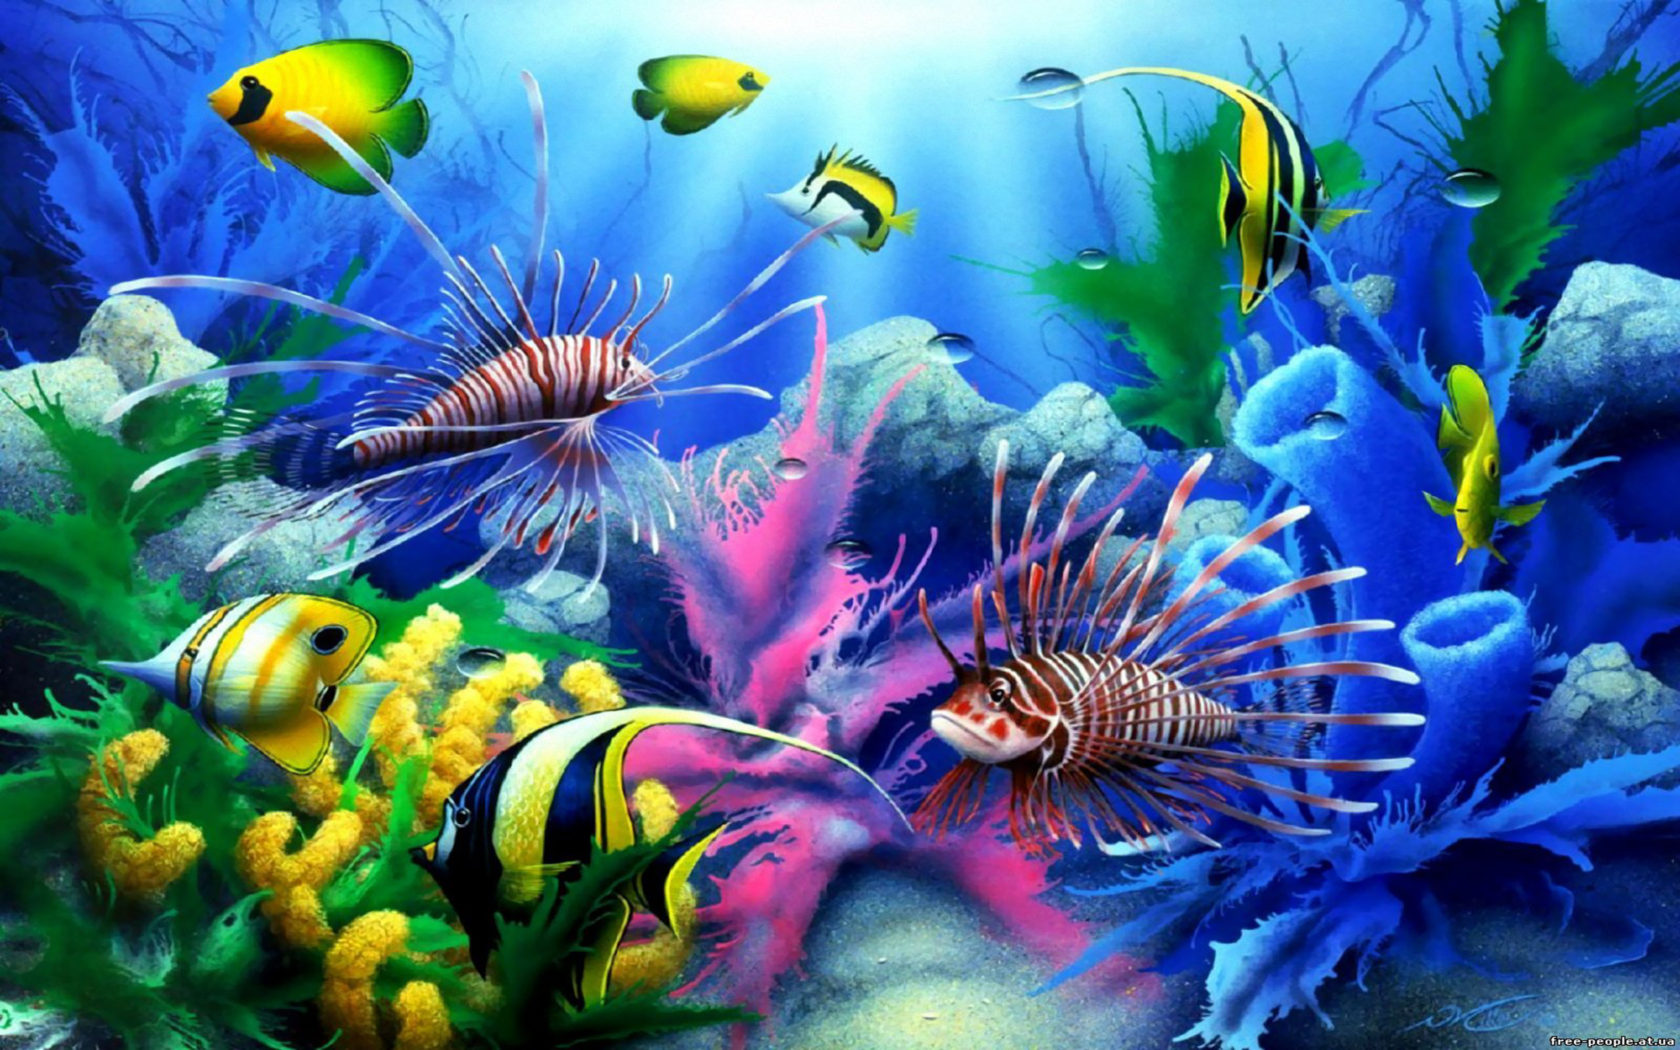 3d Koi Live Wallpaper Sea Seabed Colorful Tropical Fish Coral Wallpaper Hd For